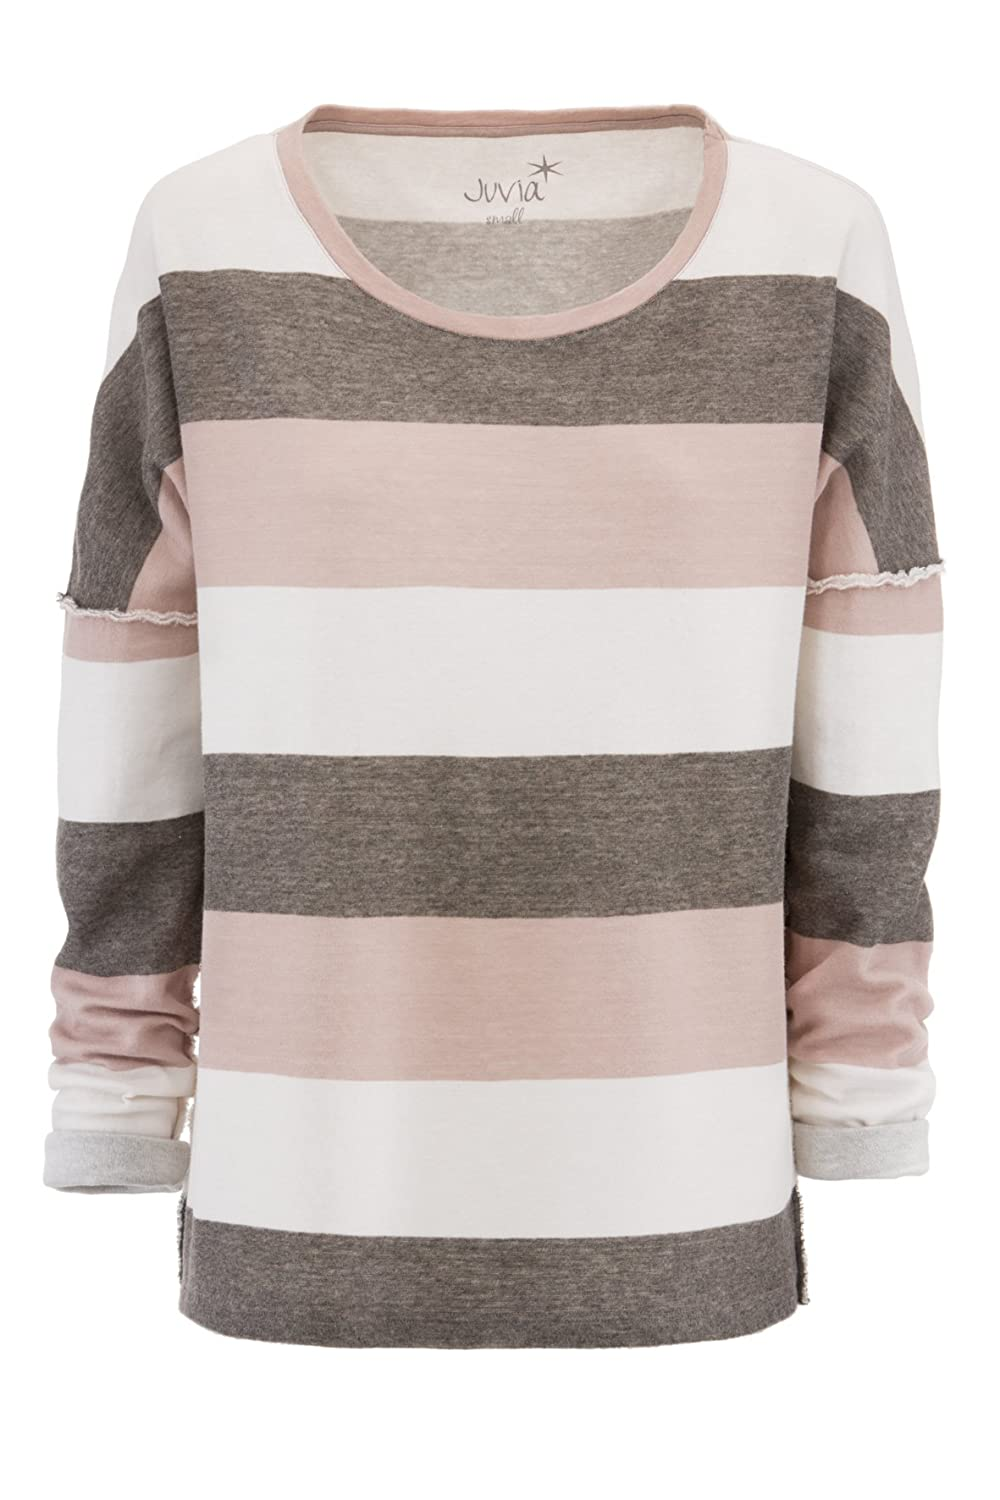 Juvia Sweater mauve Blockstreifen